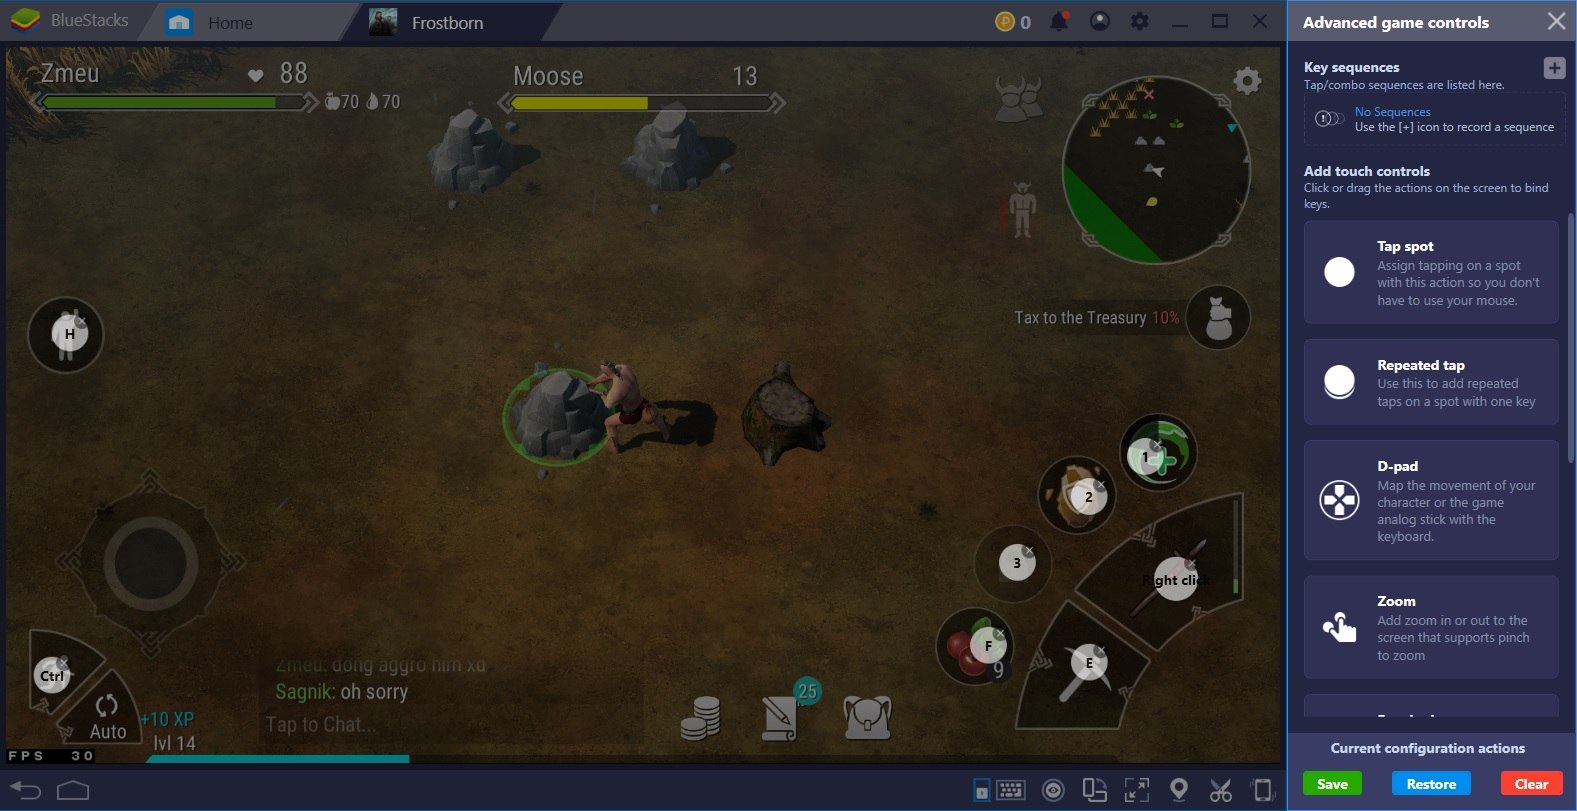 How to Install and Play Frostborn on BlueStacks